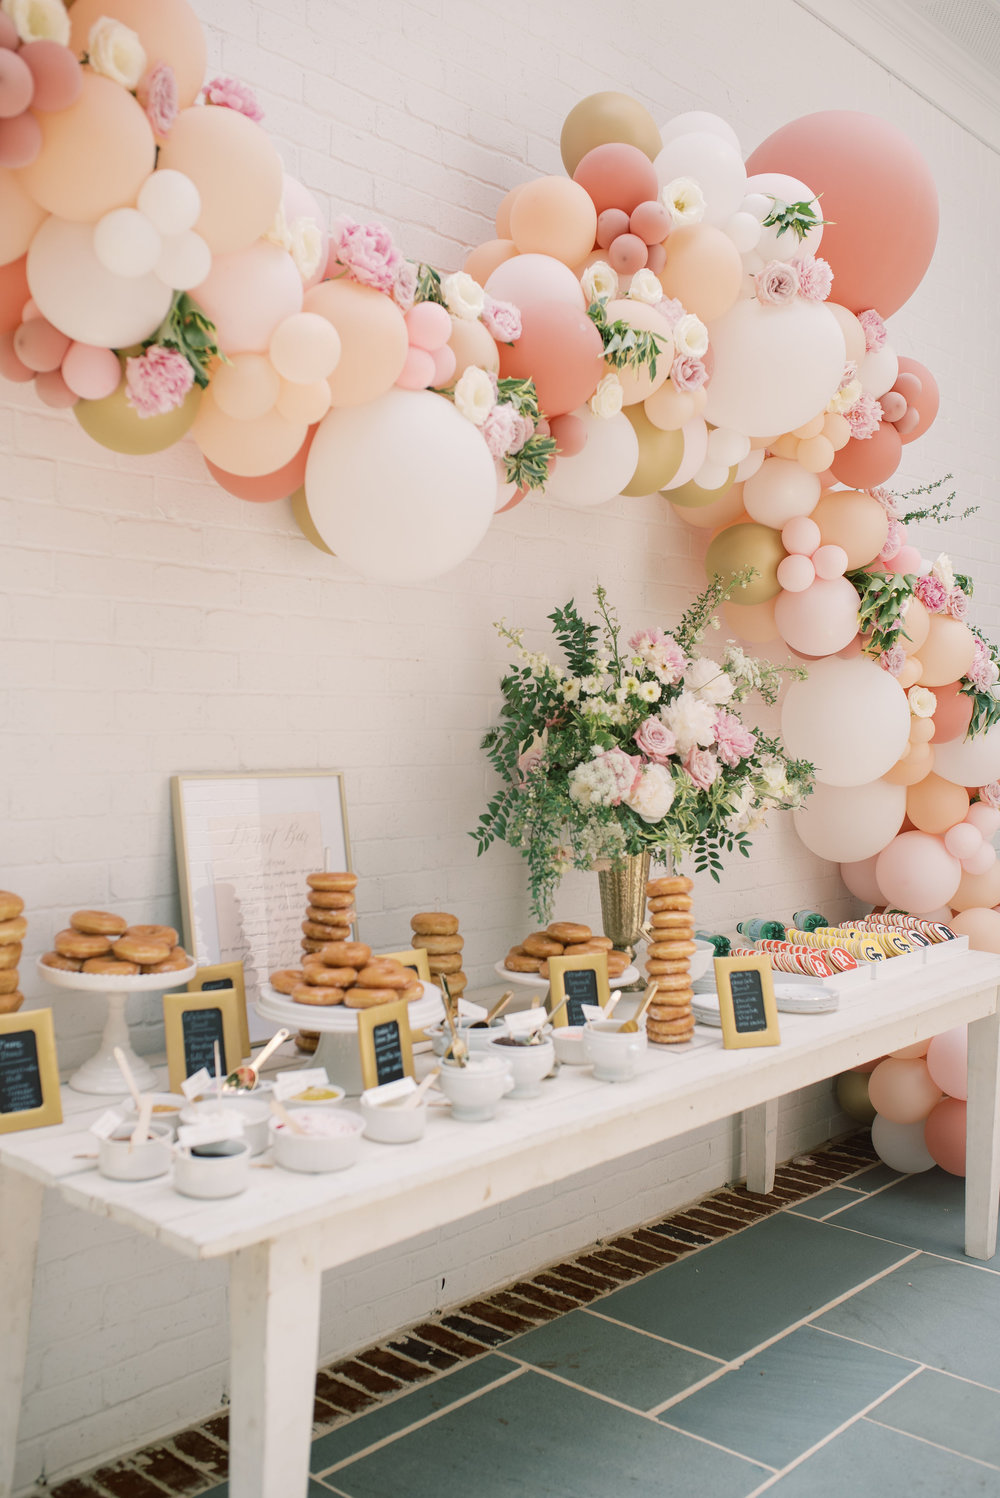 Image from https://www.simplycharmingsocials.com/grad-party